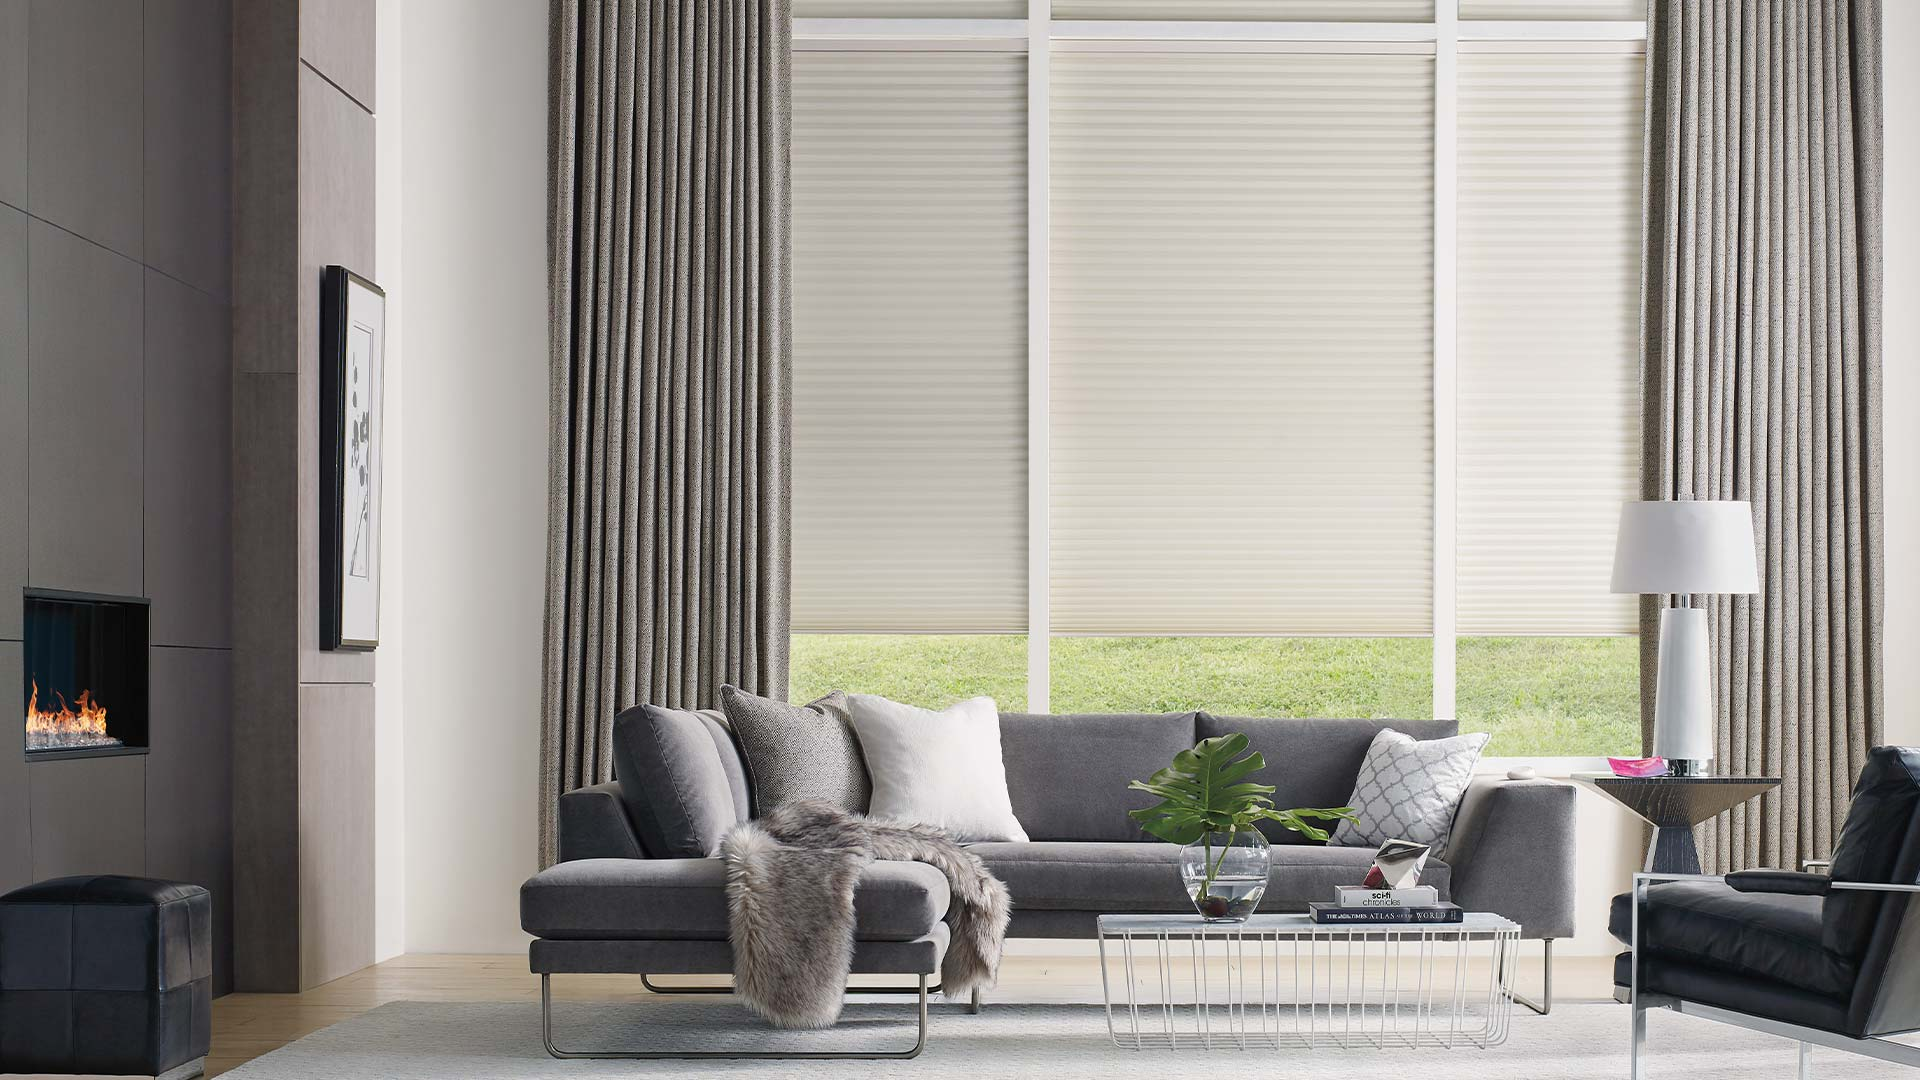 Room scene with sofa in front of windows with vertical blinds half closed